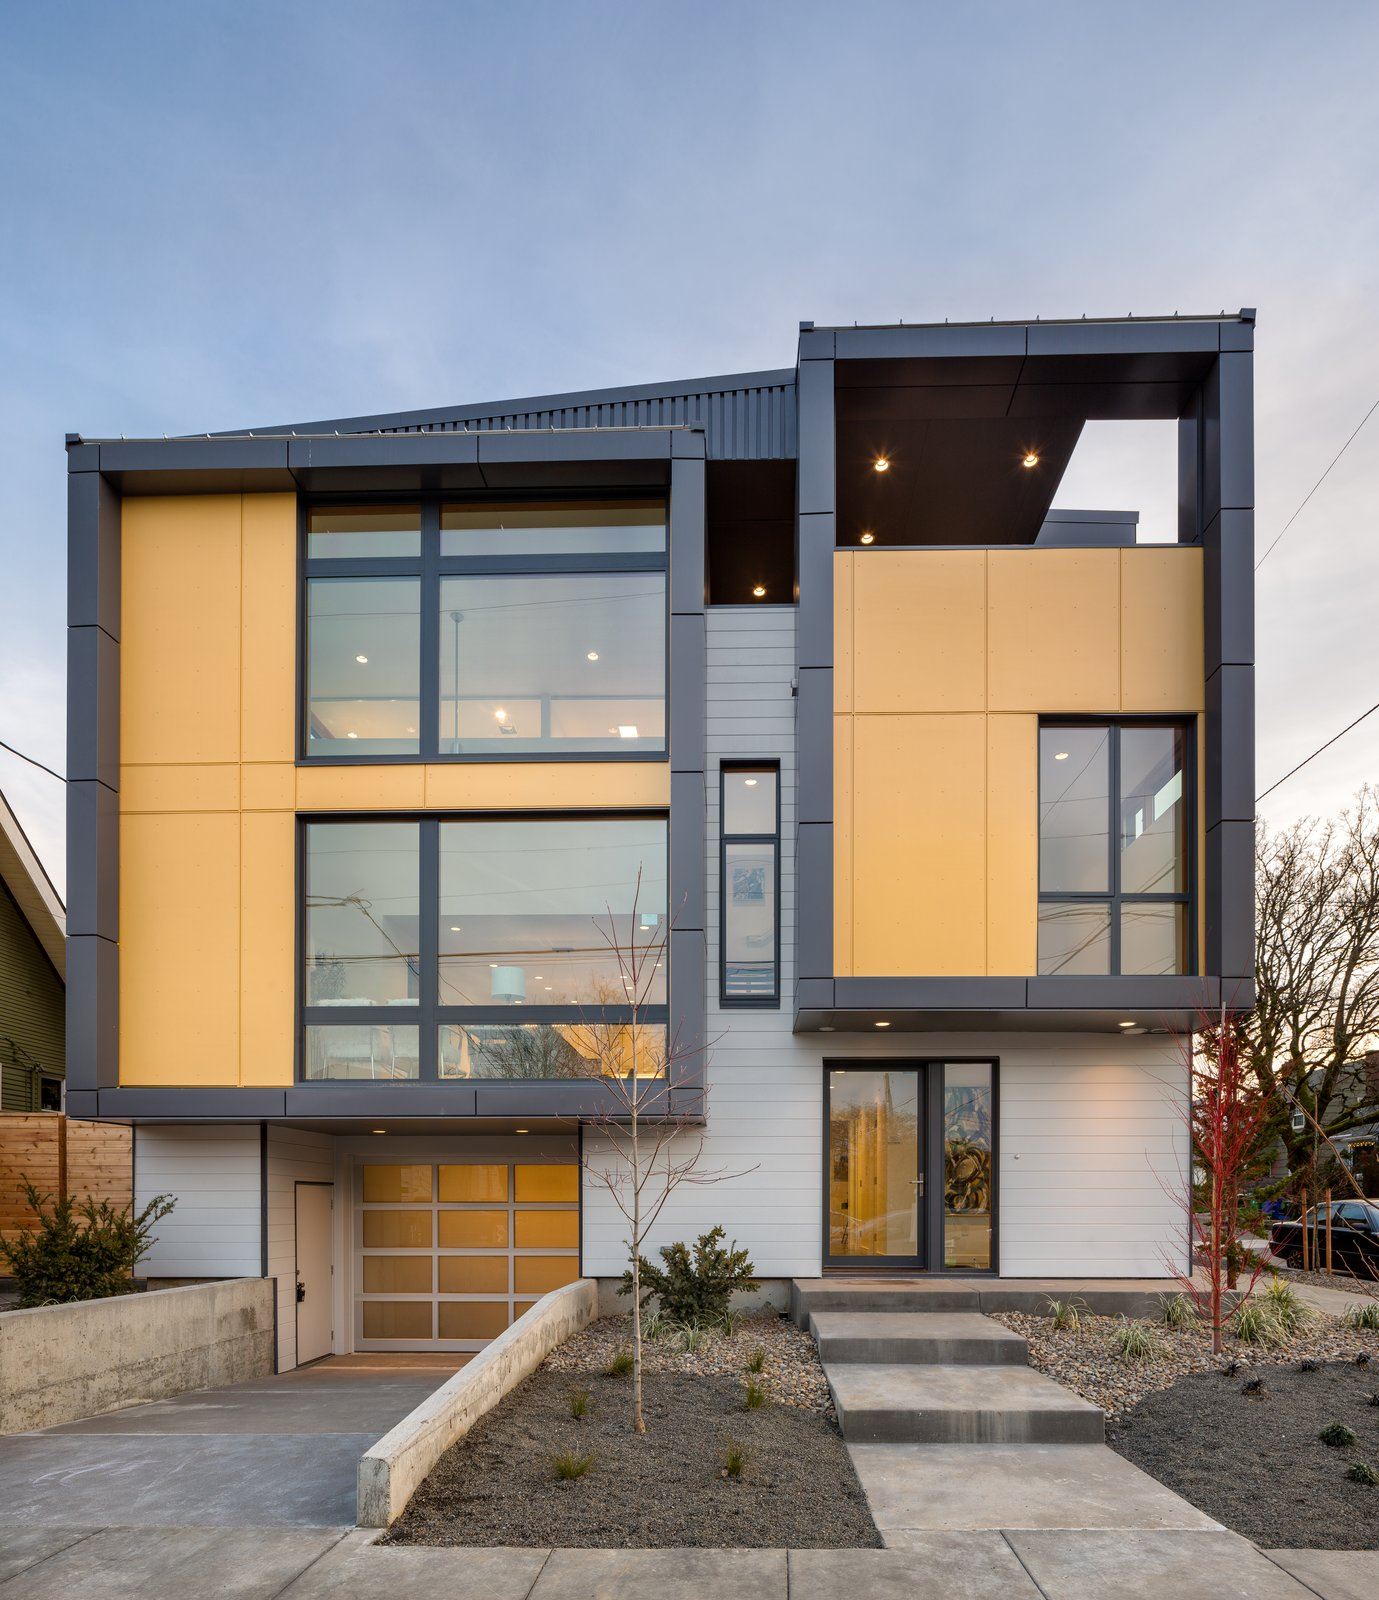 Exterior, Metal Roof Material, House Building Type, Flat RoofLine, Shed RoofLine, and Metal Siding Material Exterior elevation showing split levels  Lightbox 23 by Steelhead Architecture